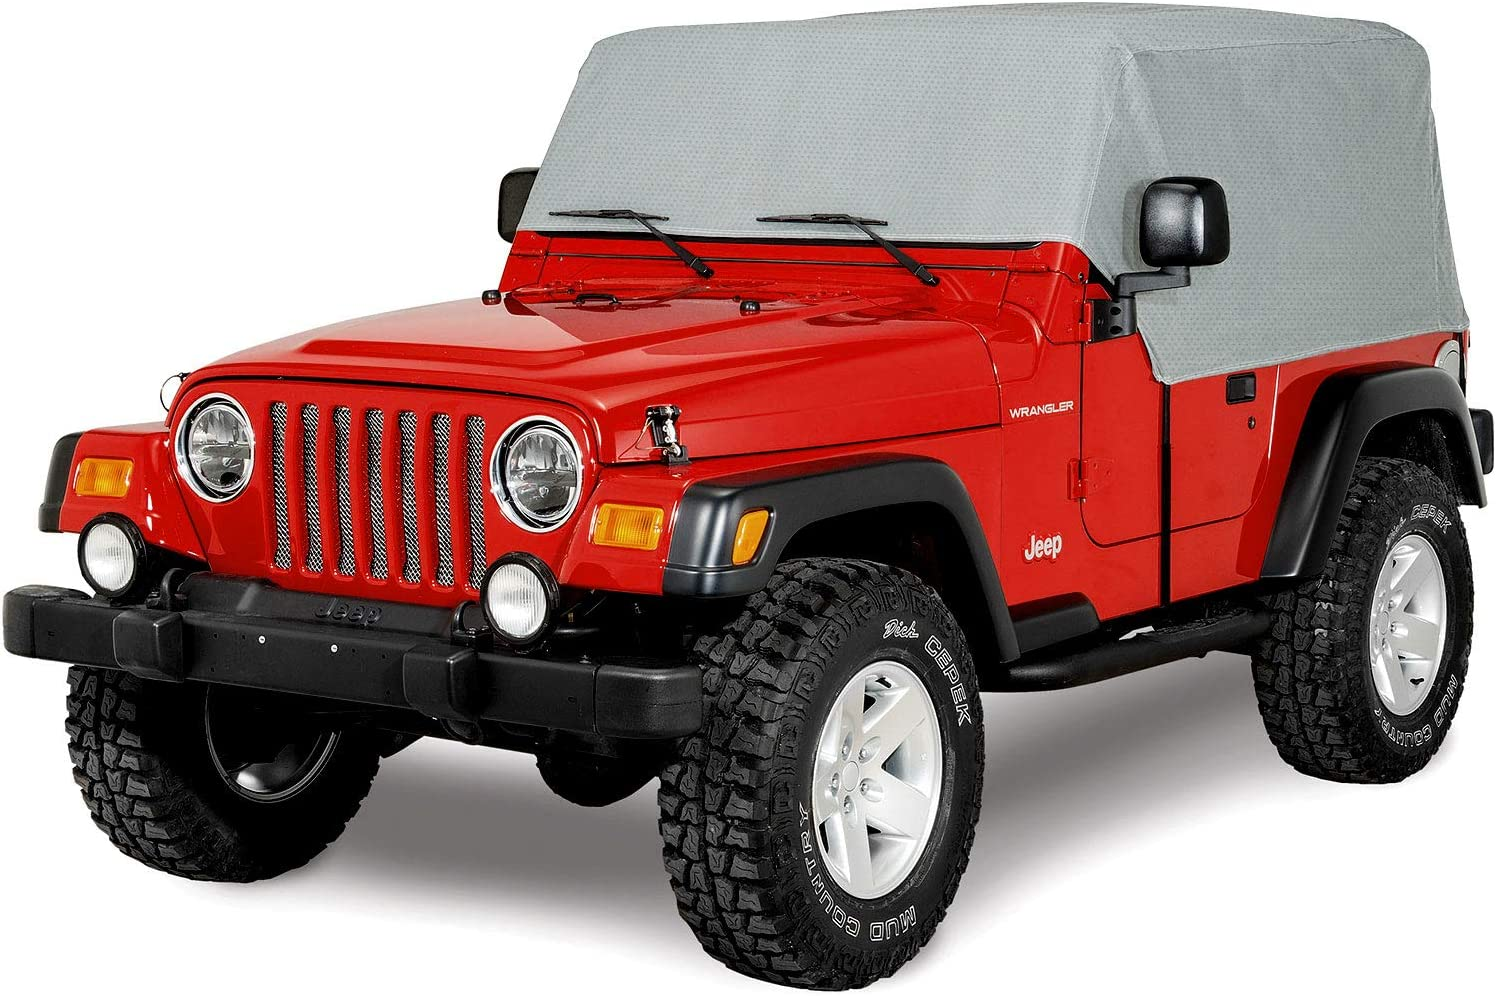 North East Harbor 4-Layer Breathable Cab Car Cover For 1976-2006 Jeep Wrangler and Weather Resistant Storage Cover UV Protected Breathable Material Grey